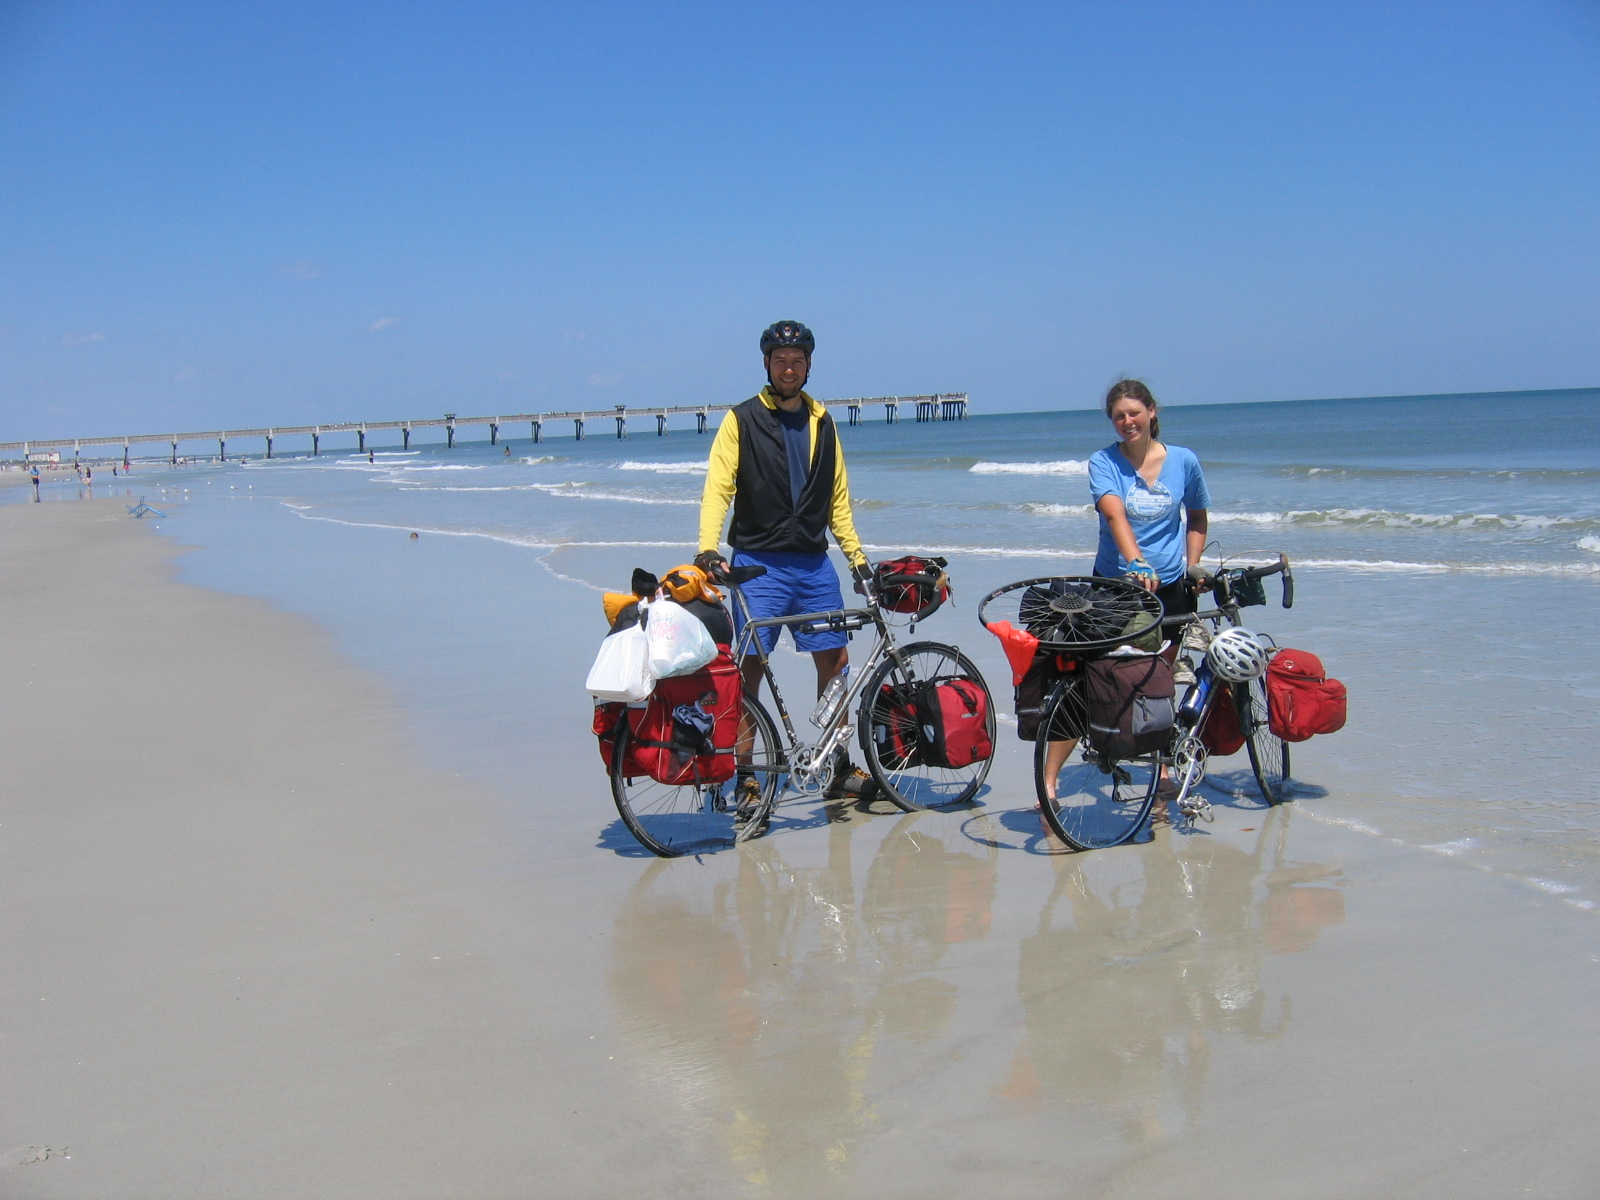 my wheel troubles and the persistently stormy florida weather caused us to re think our round about initial route to the atlantic ocean by way of